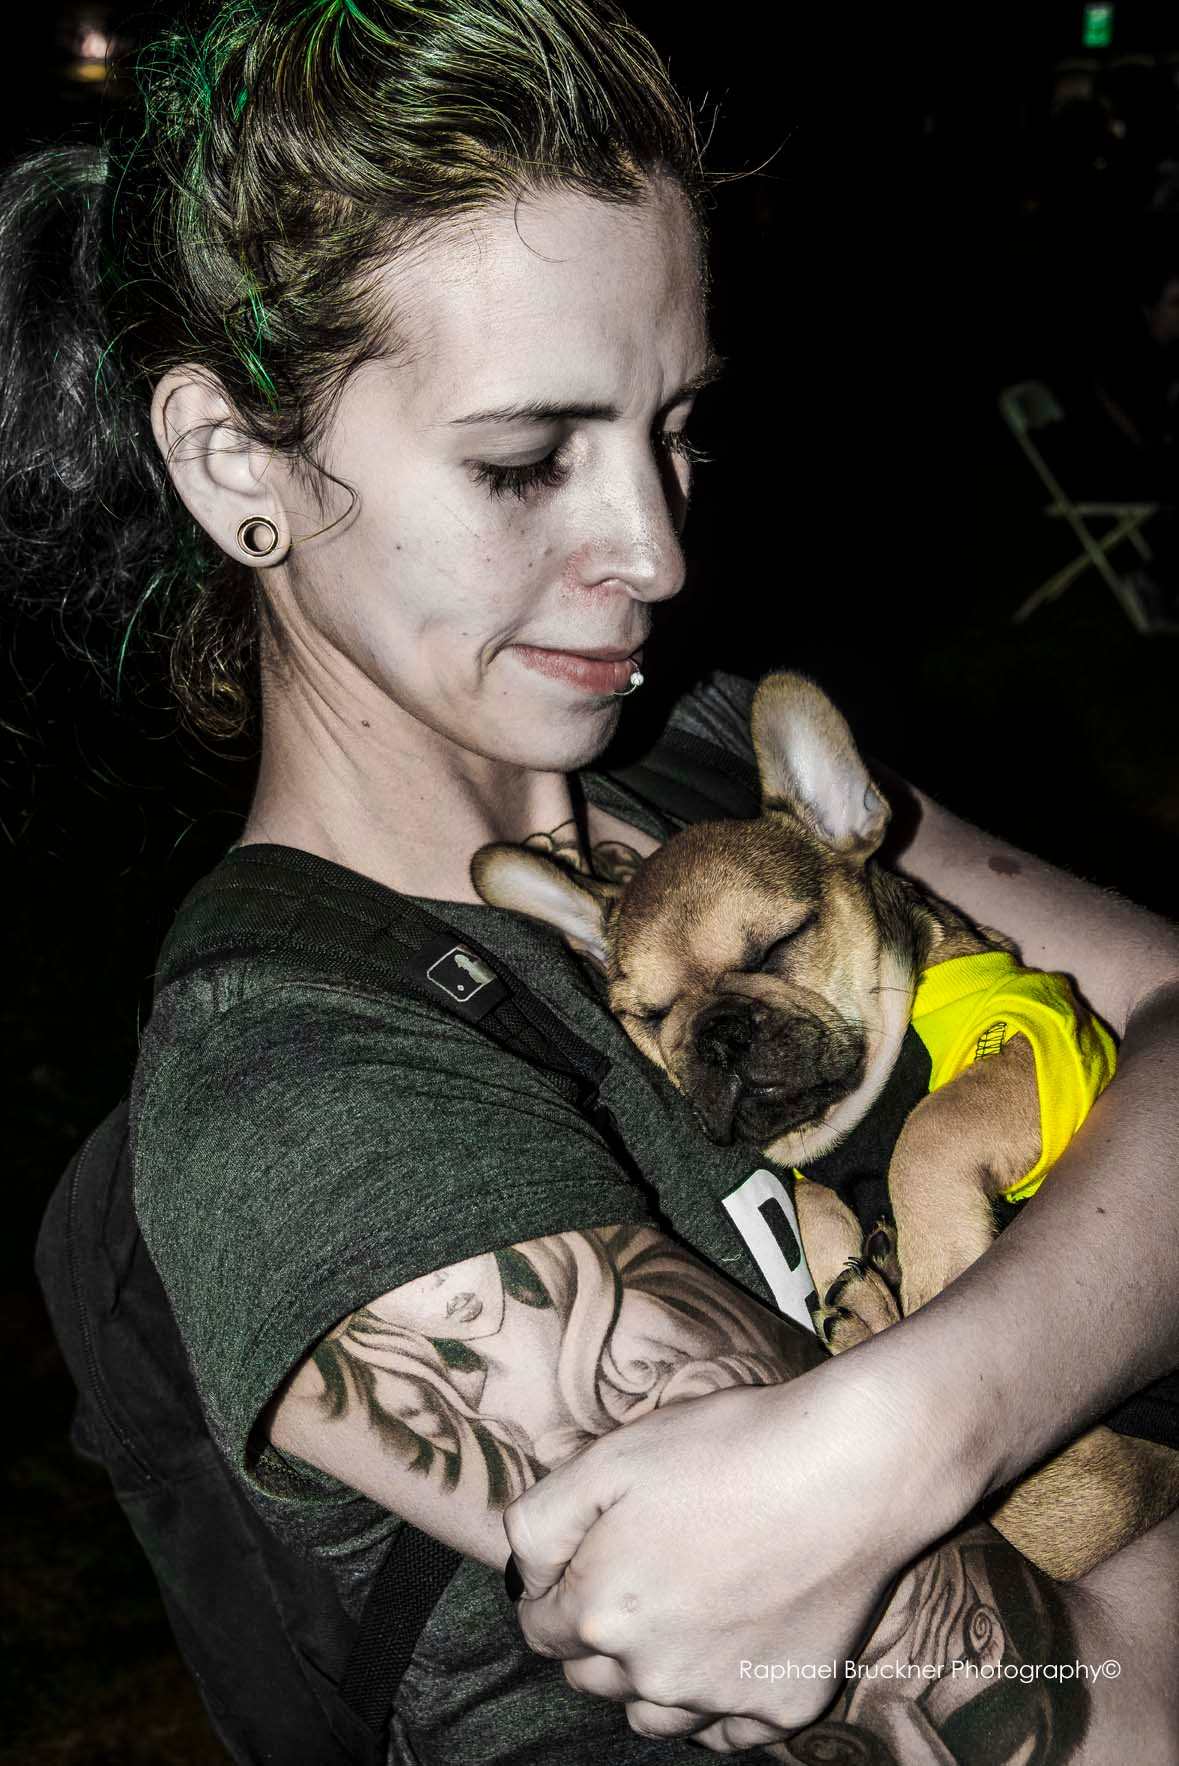 Woman With French Bulldog in Repose  by Raphael Bruckner Photography